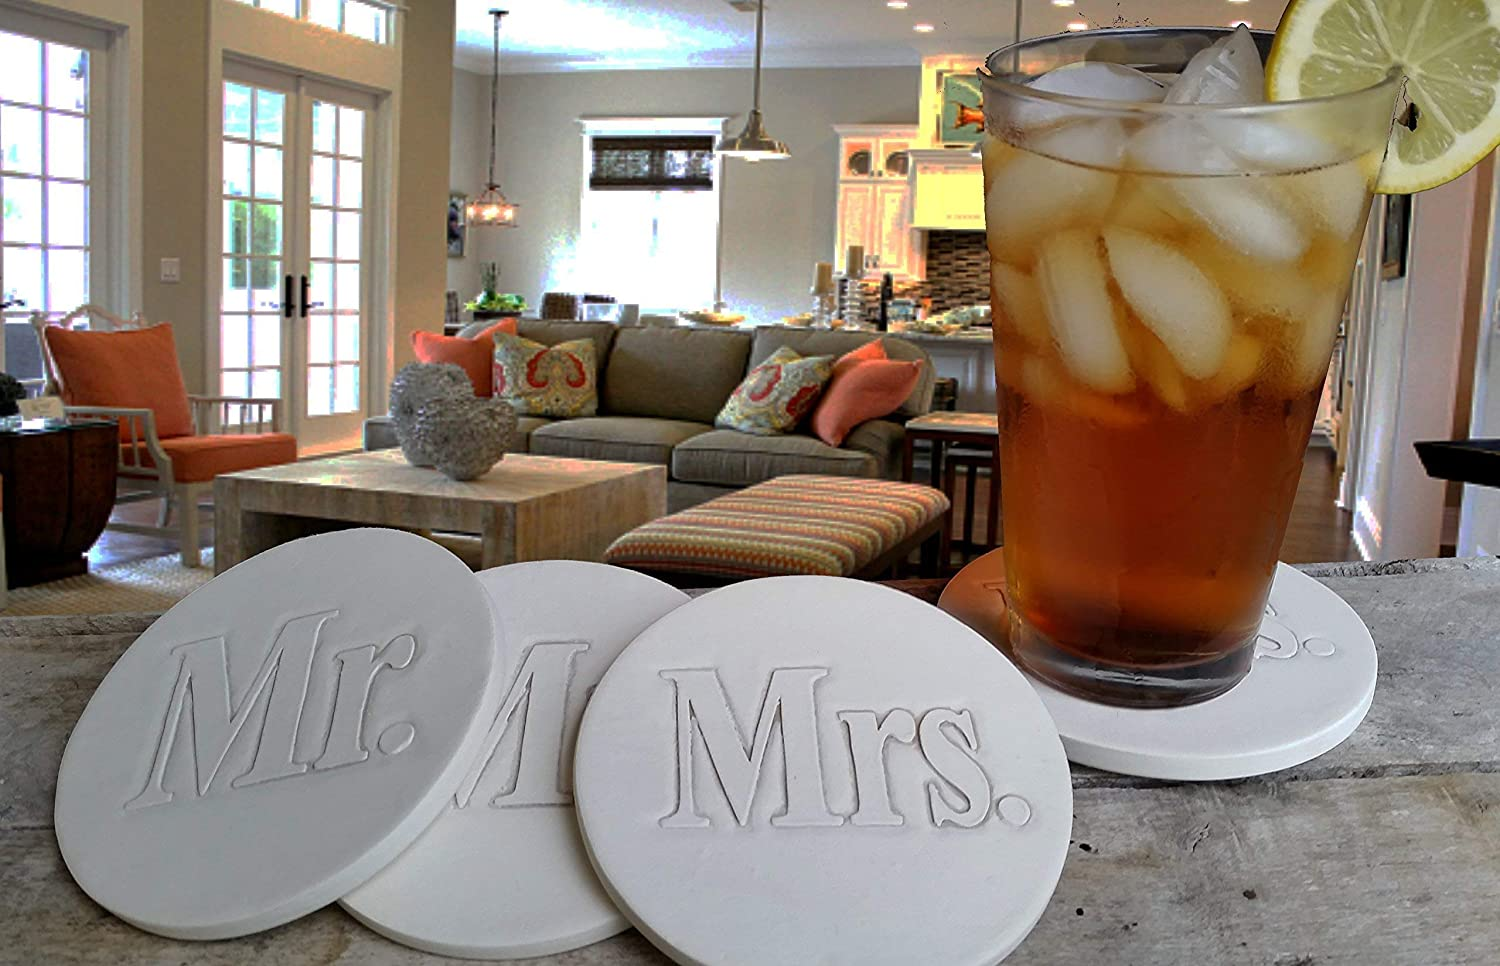 House Warming Drink Coasters and Mrs set Handmade by McCarter Coasters for Home Wedding Registry Hot or Cold Beverages 4.38 Off-White Mr - Absorbent 4pc